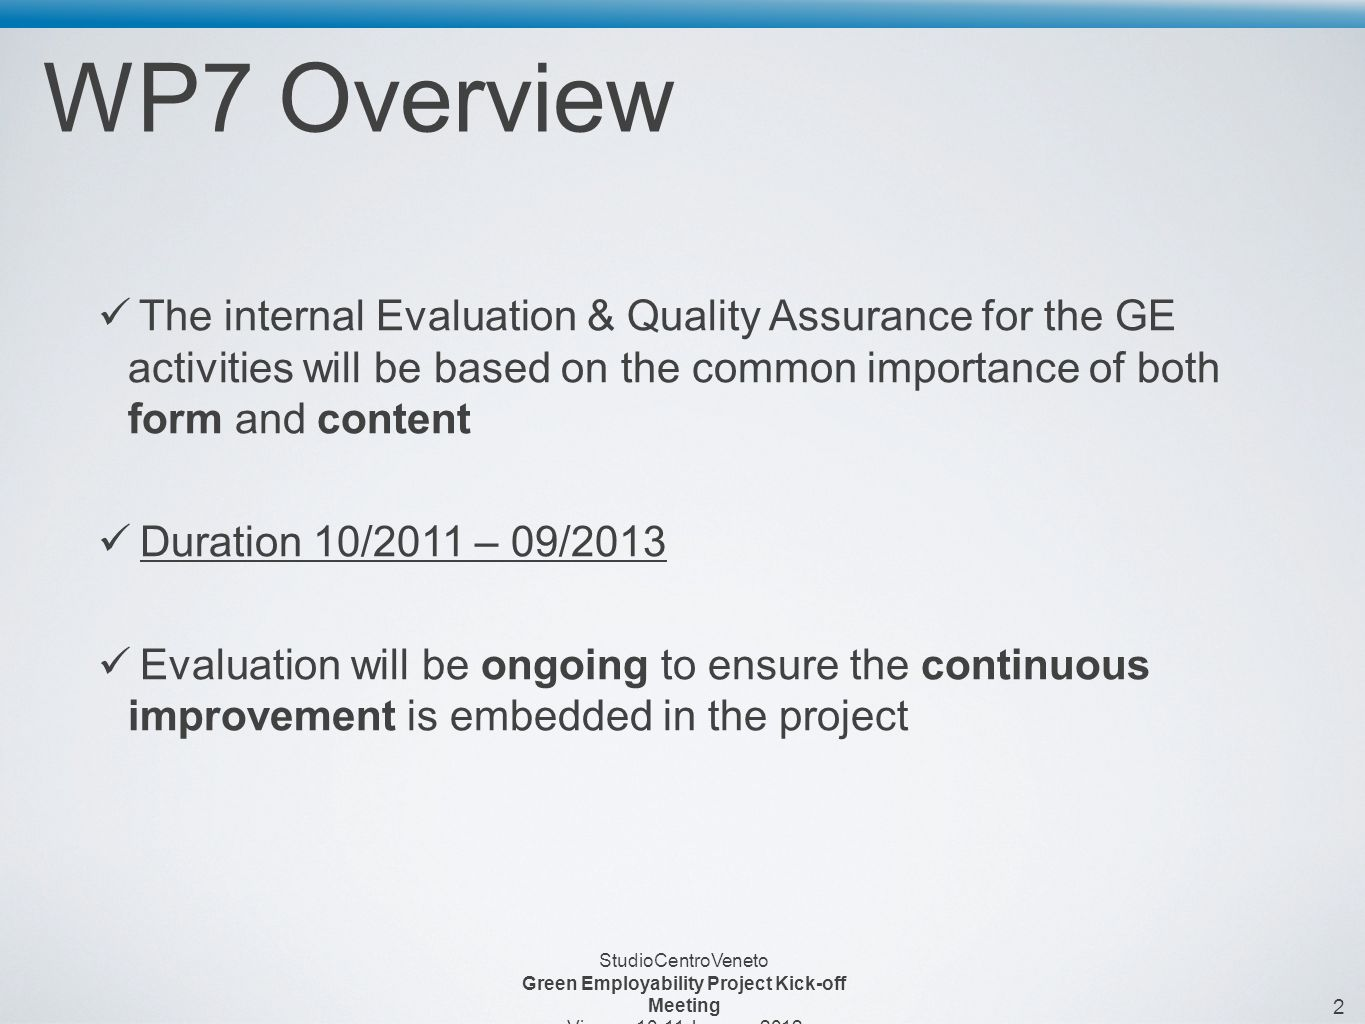 2 StudioCentroVeneto Green Employability Project Kick-off Meeting Vienna, January 2012 WP7 Overview The internal Evaluation & Quality Assurance for the GE activities will be based on the common importance of both form and content Duration 10/2011 – 09/2013 Evaluation will be ongoing to ensure the continuous improvement is embedded in the project